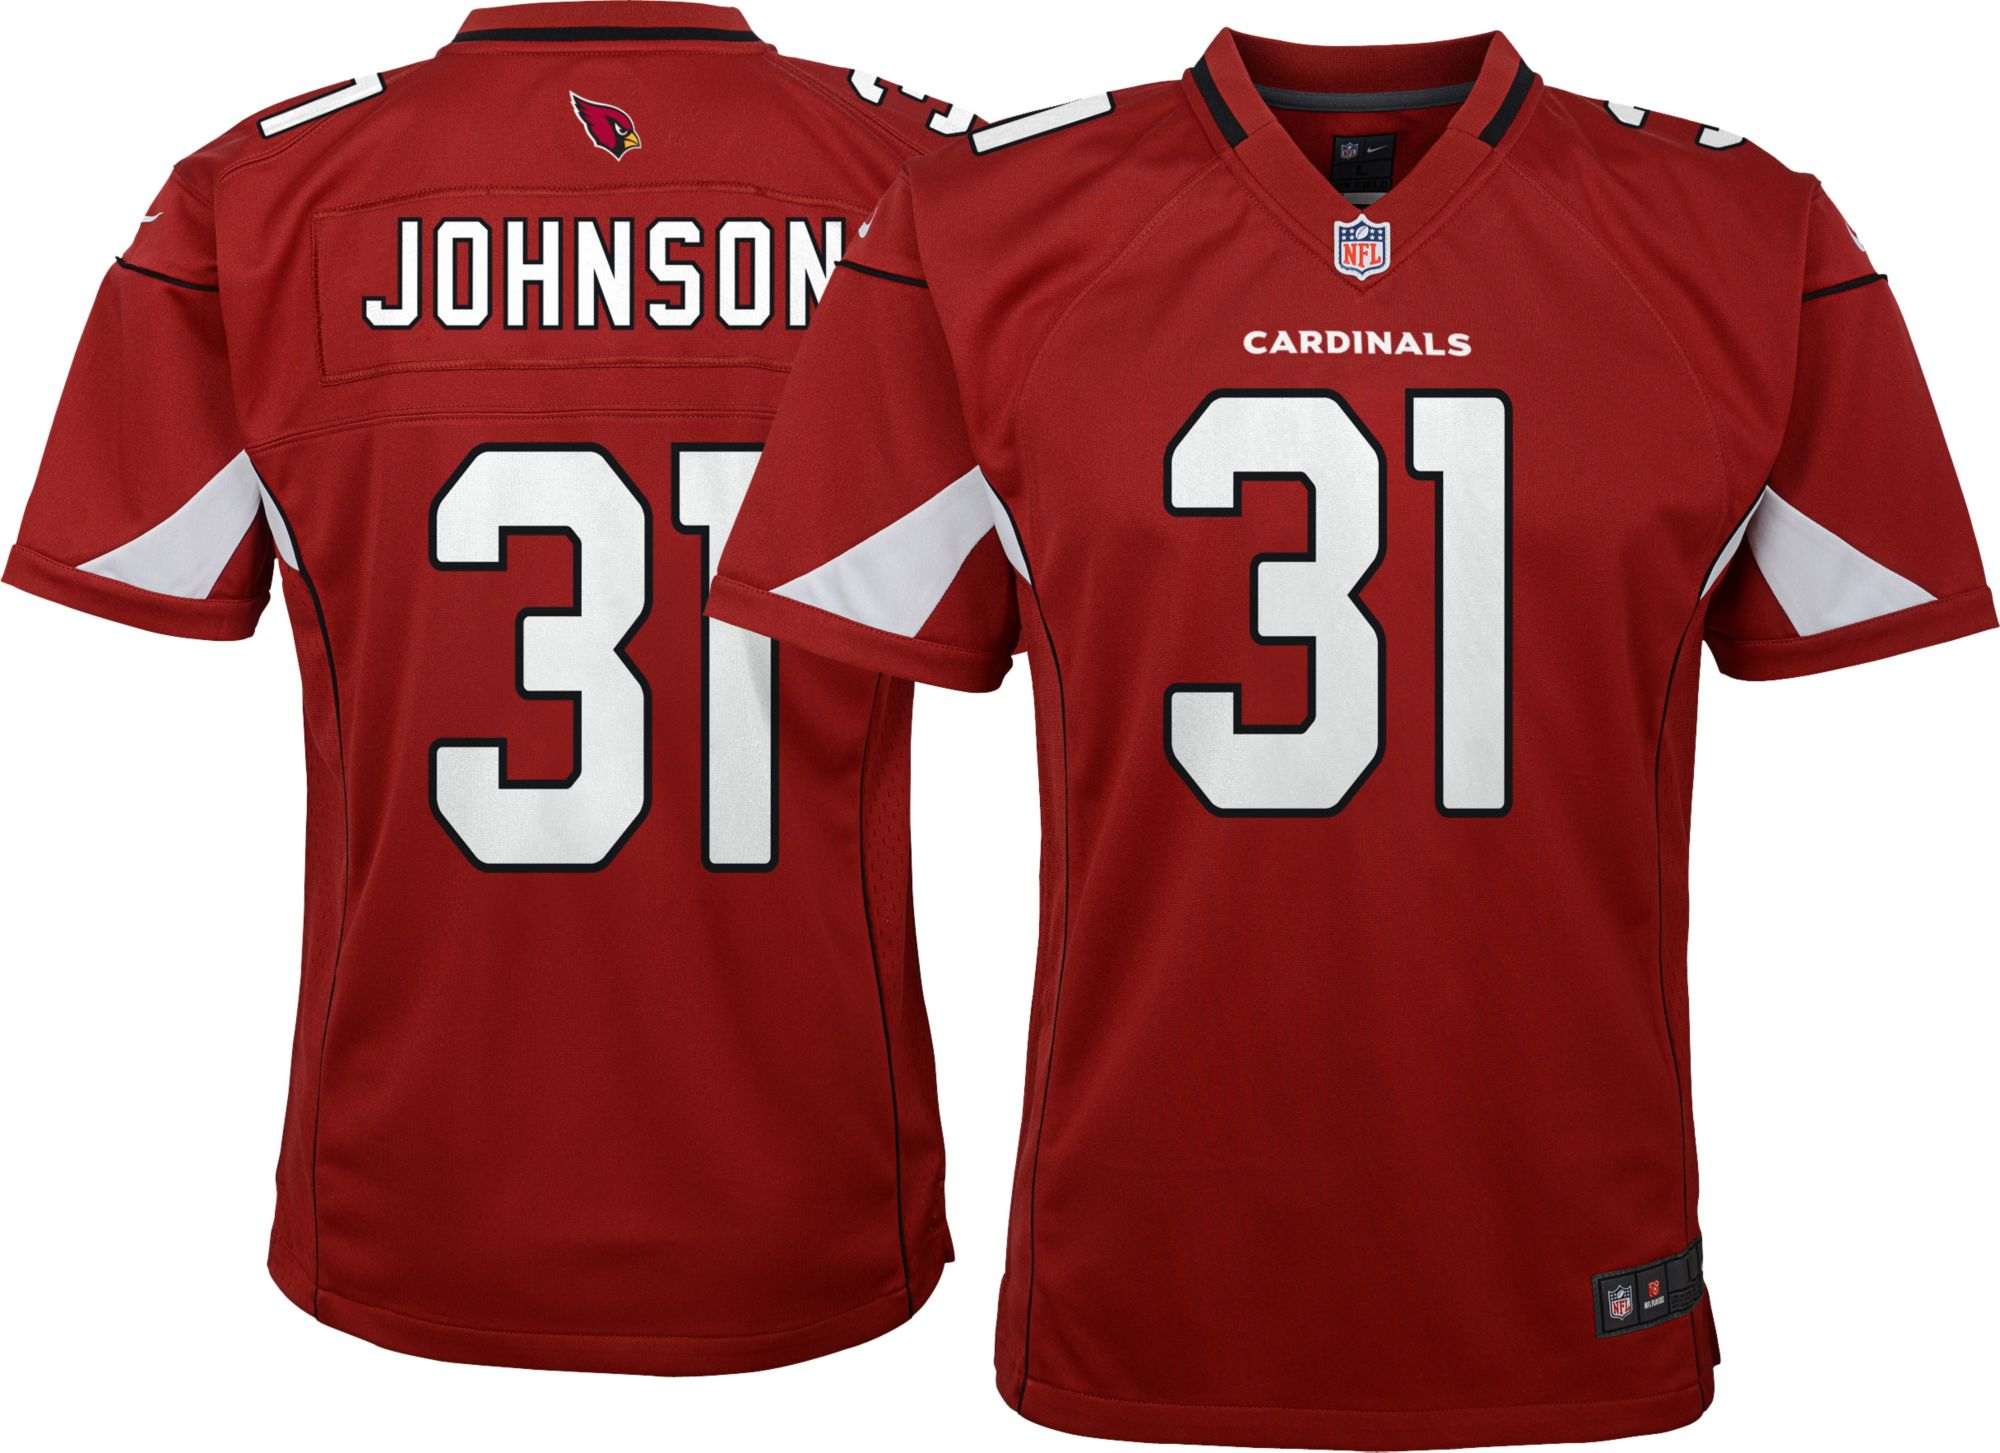 david johnson stitched jersey